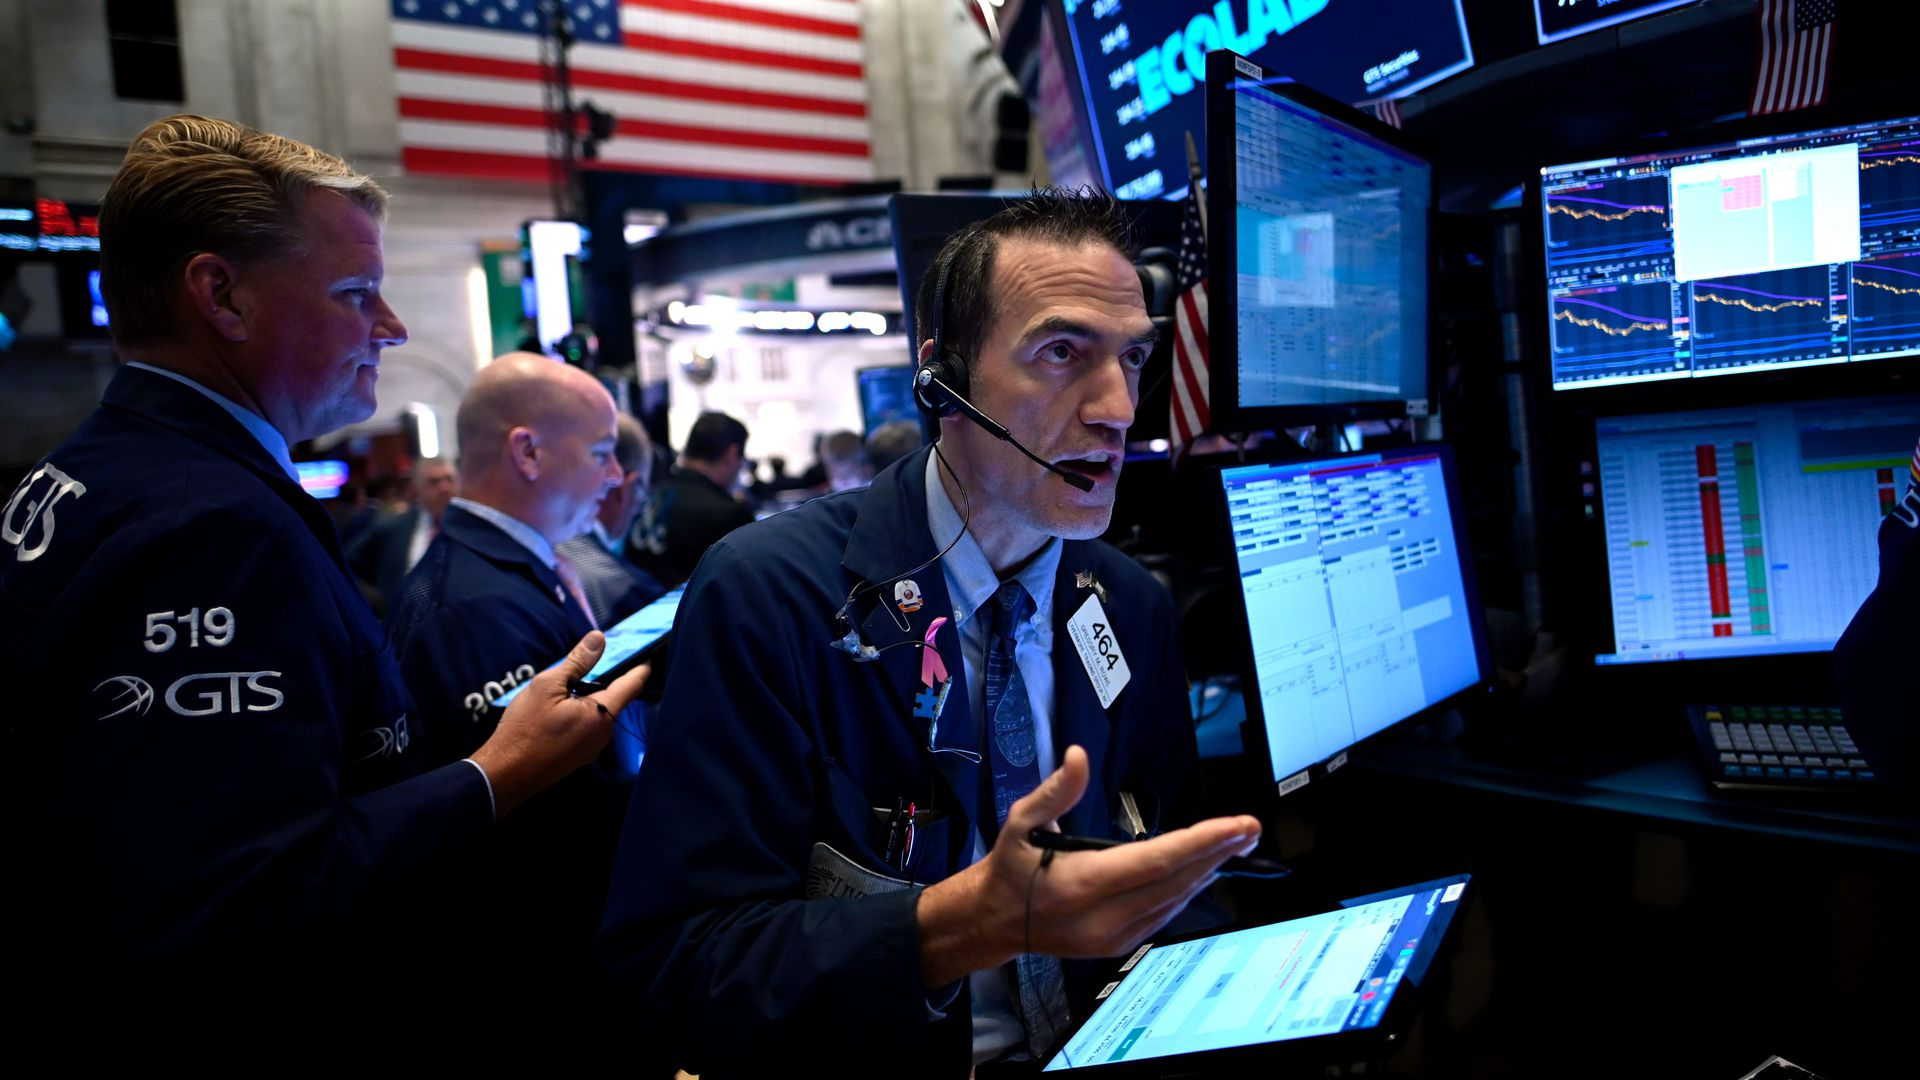 Traders work during the opening bell at the New York Stock Exchange (NYSE) on October 2